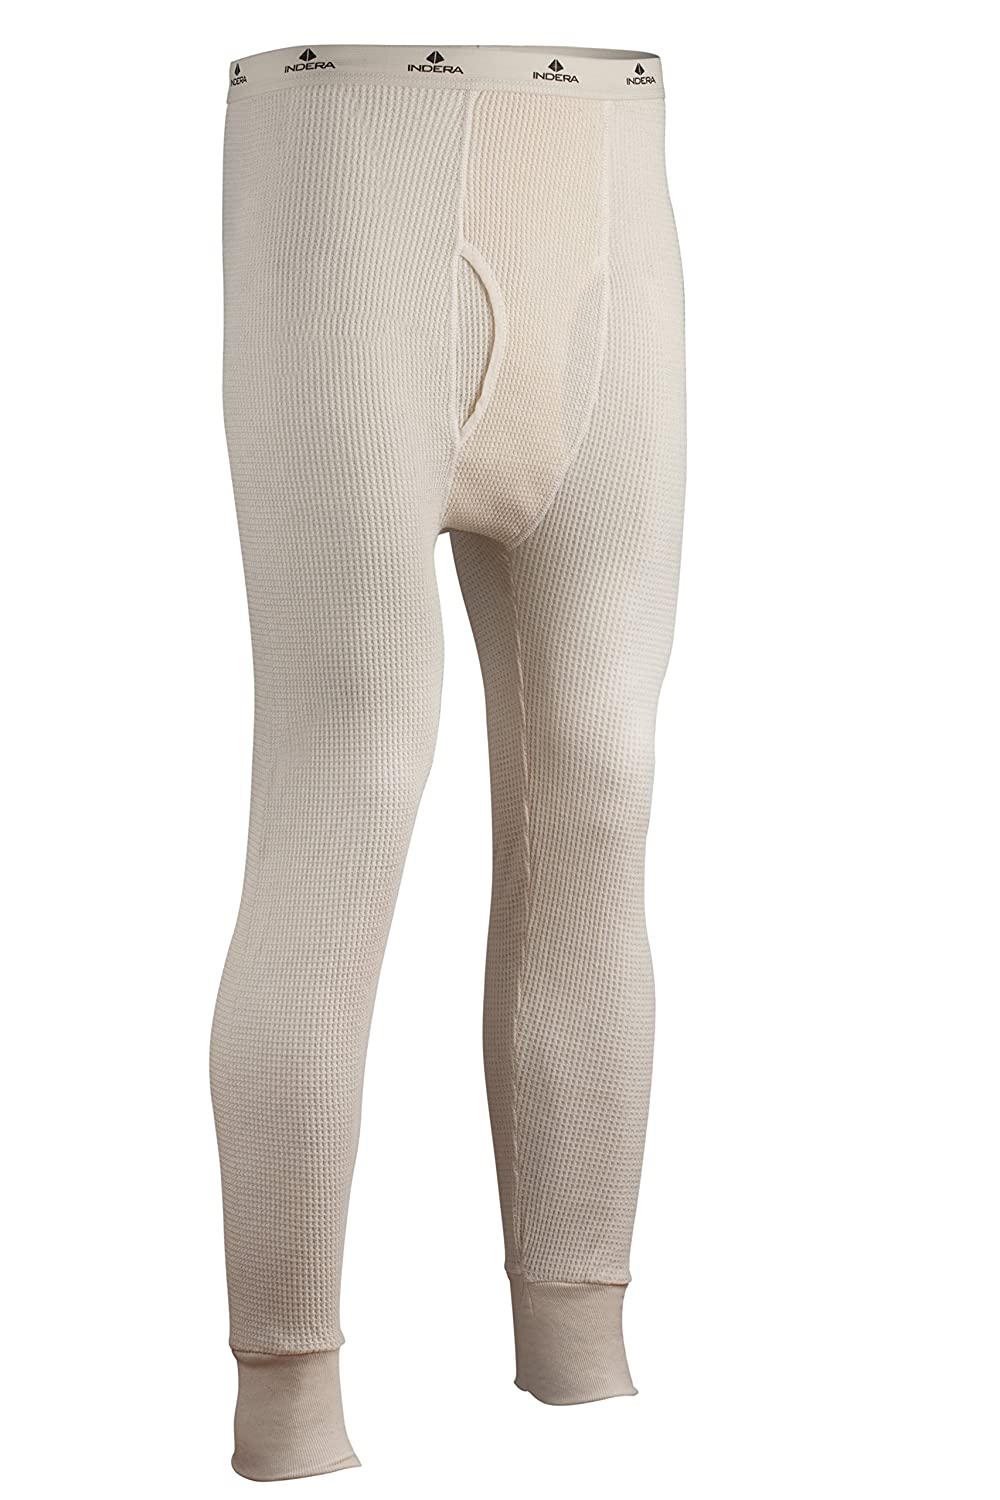 Indera Men's Tall Cotton Heavyweight Thermal Underwear Pant ColdPruf Baselayer